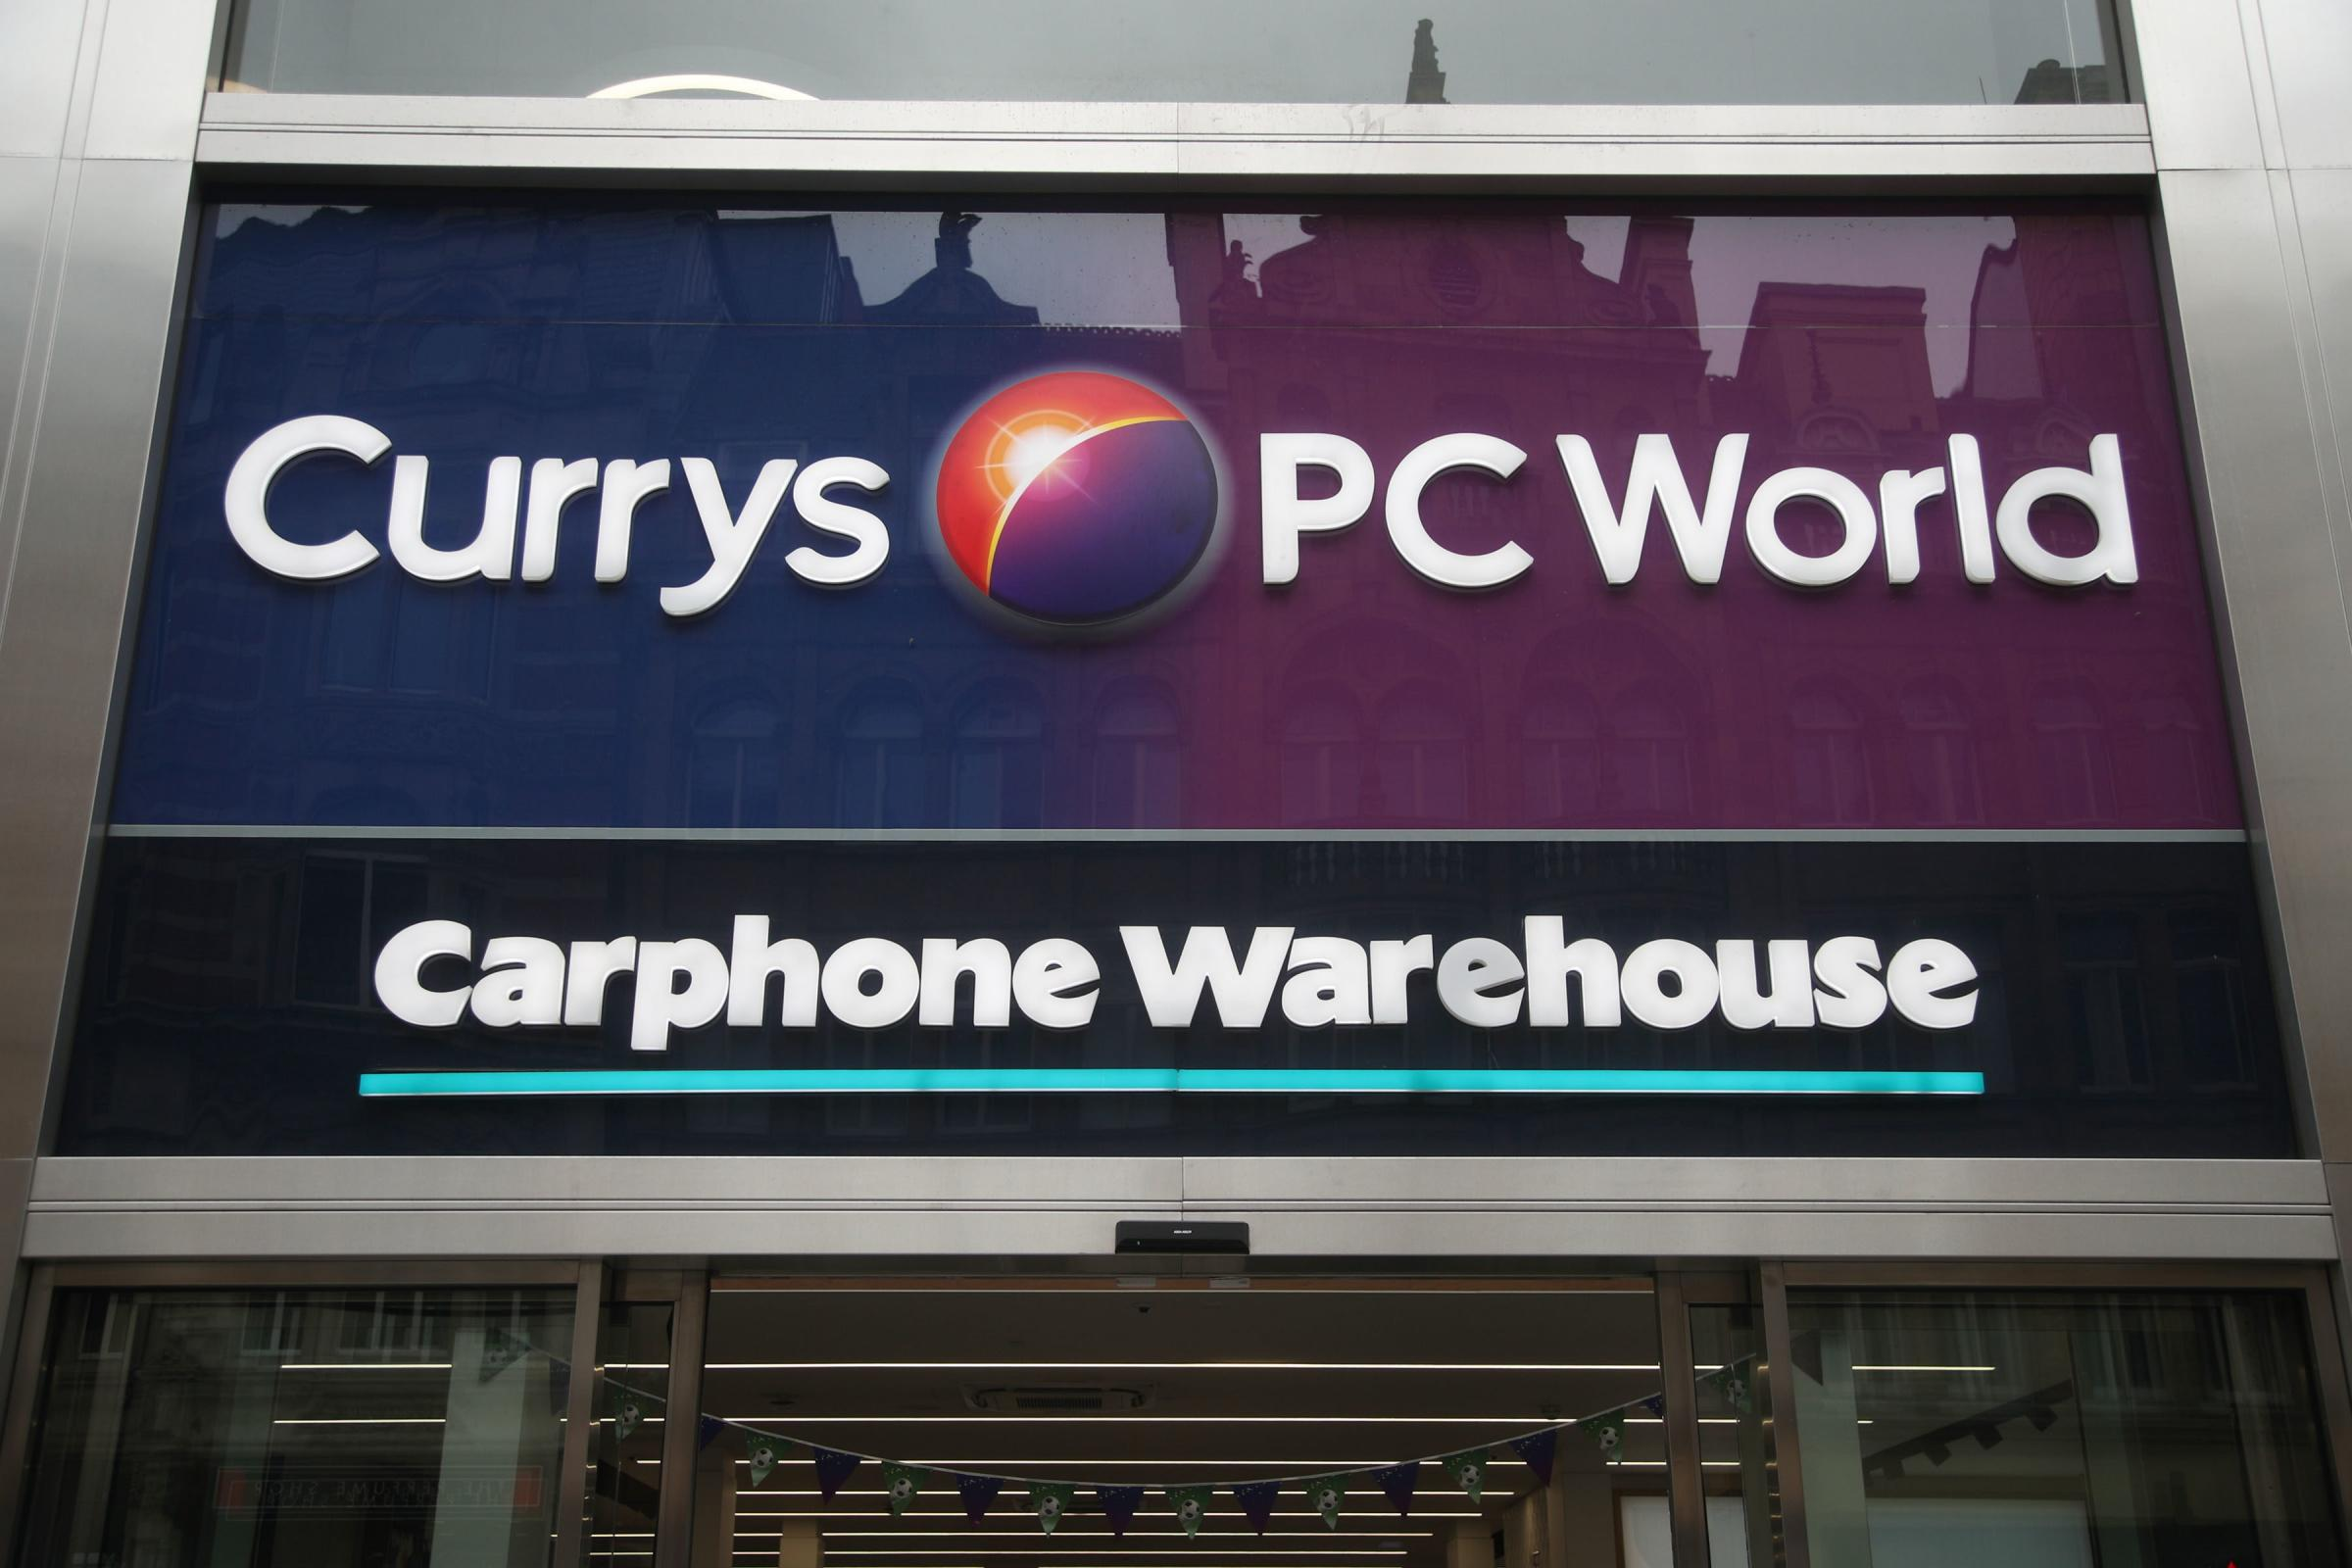 A branch of Carphone Warehouse in Currys PC World, on Oxford Street, central London